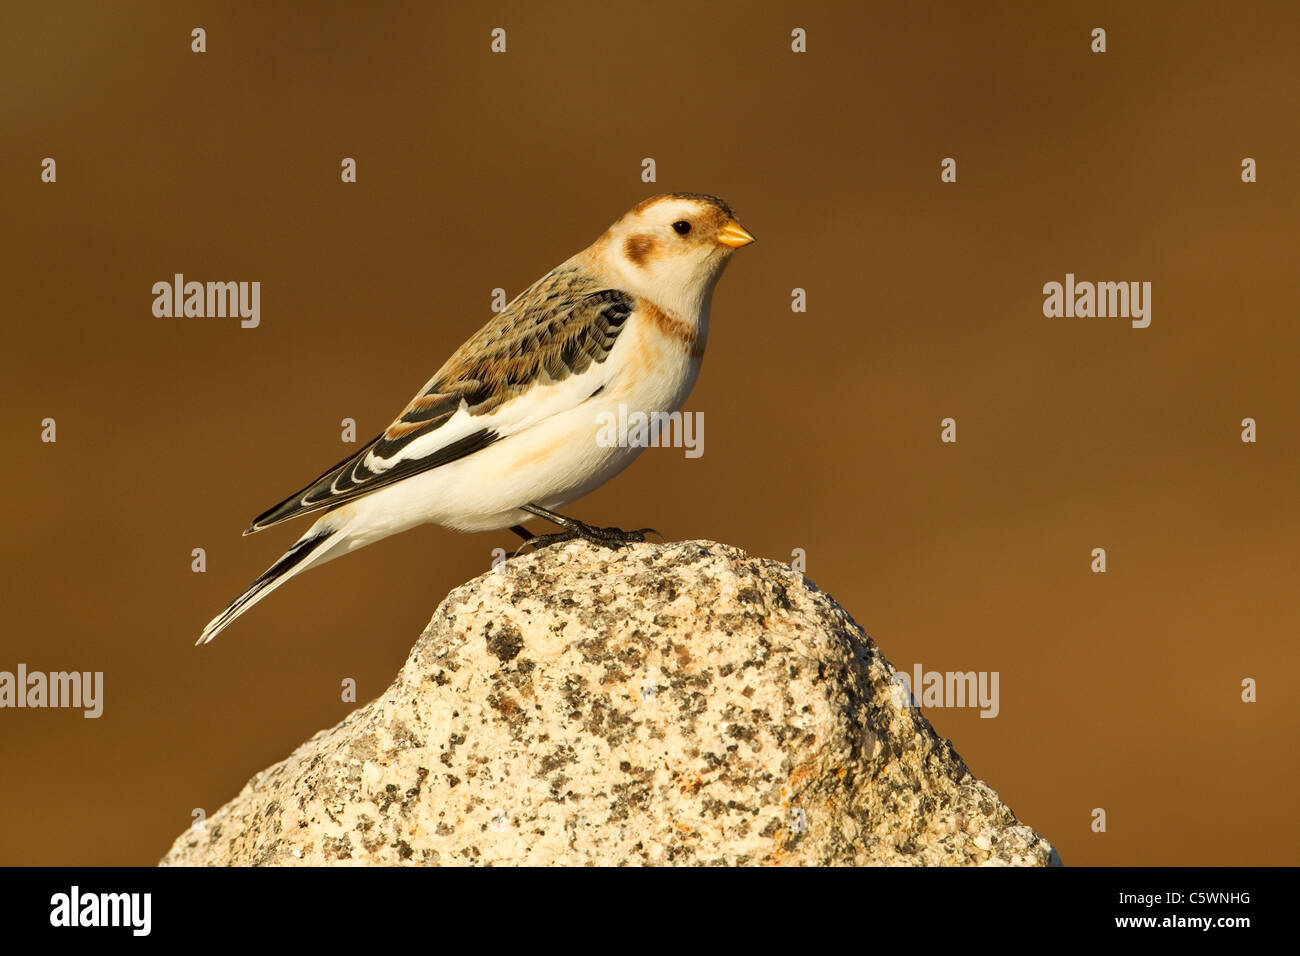 Snow Bunting (Plectrophenax nivalis). Male in winter plumage perched on rock, Scotland. - Stock Image